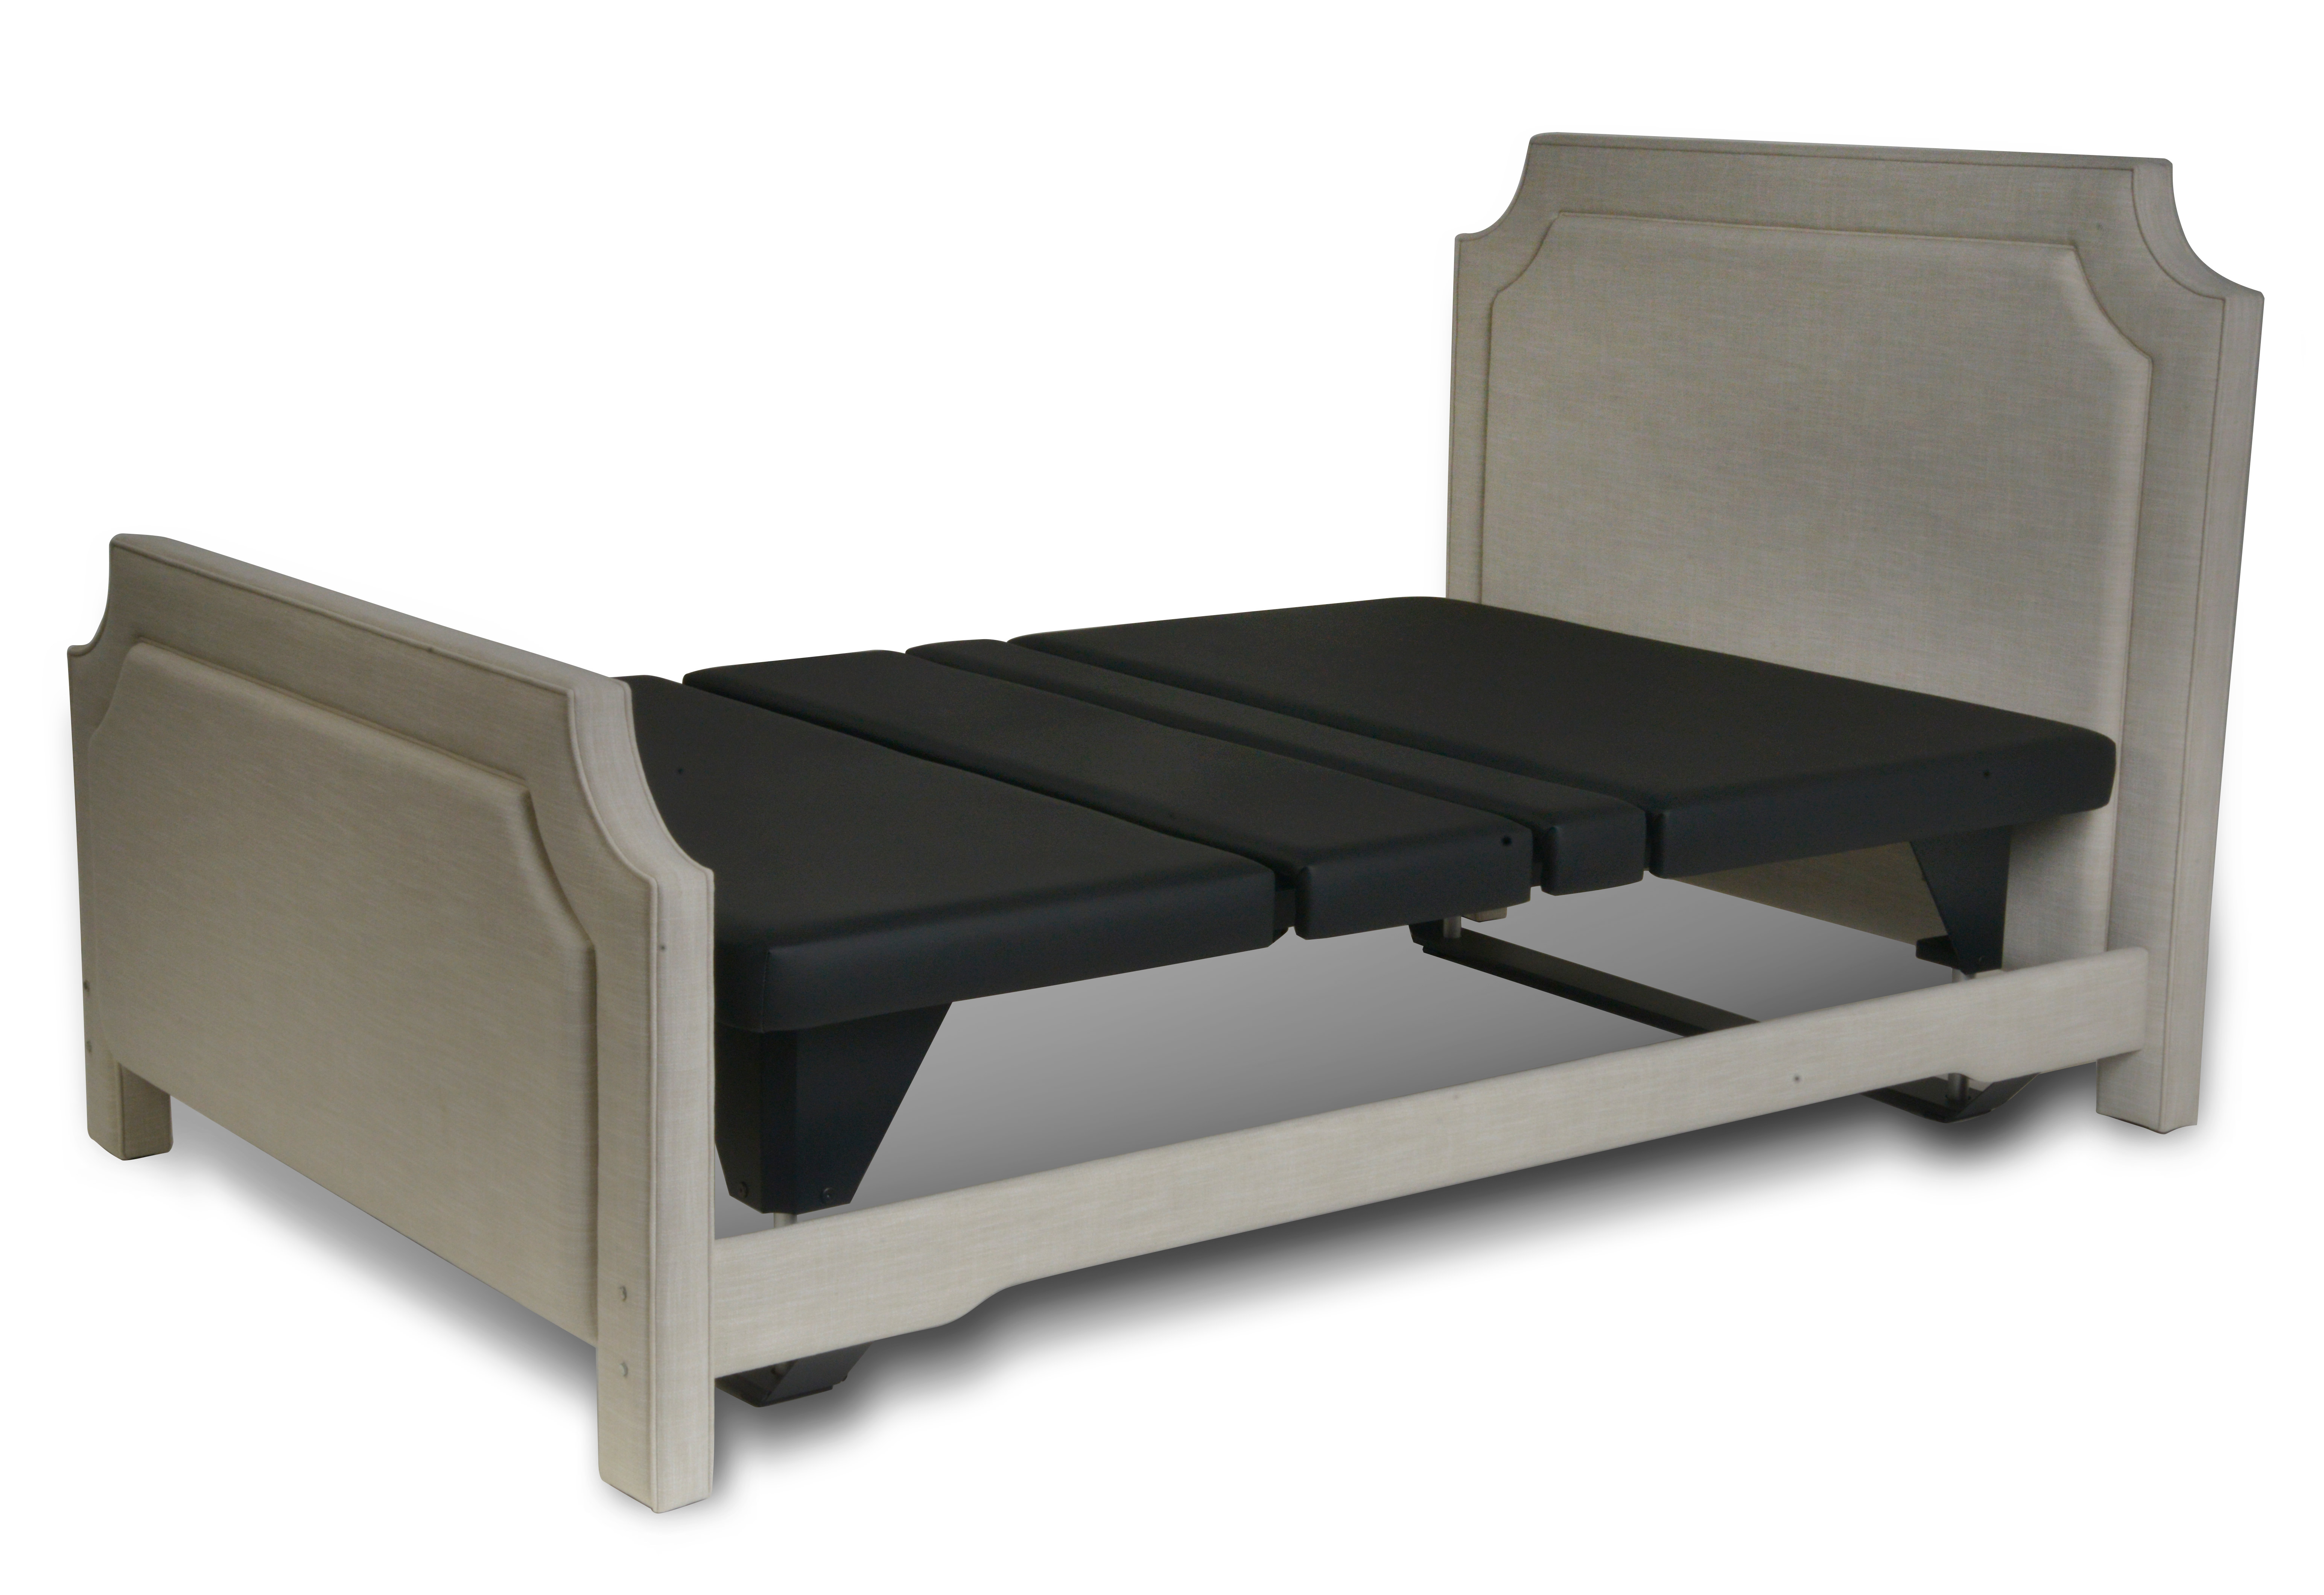 Assured Comfort Hi Low Adjustable Bed Signature Fabric - Up Position